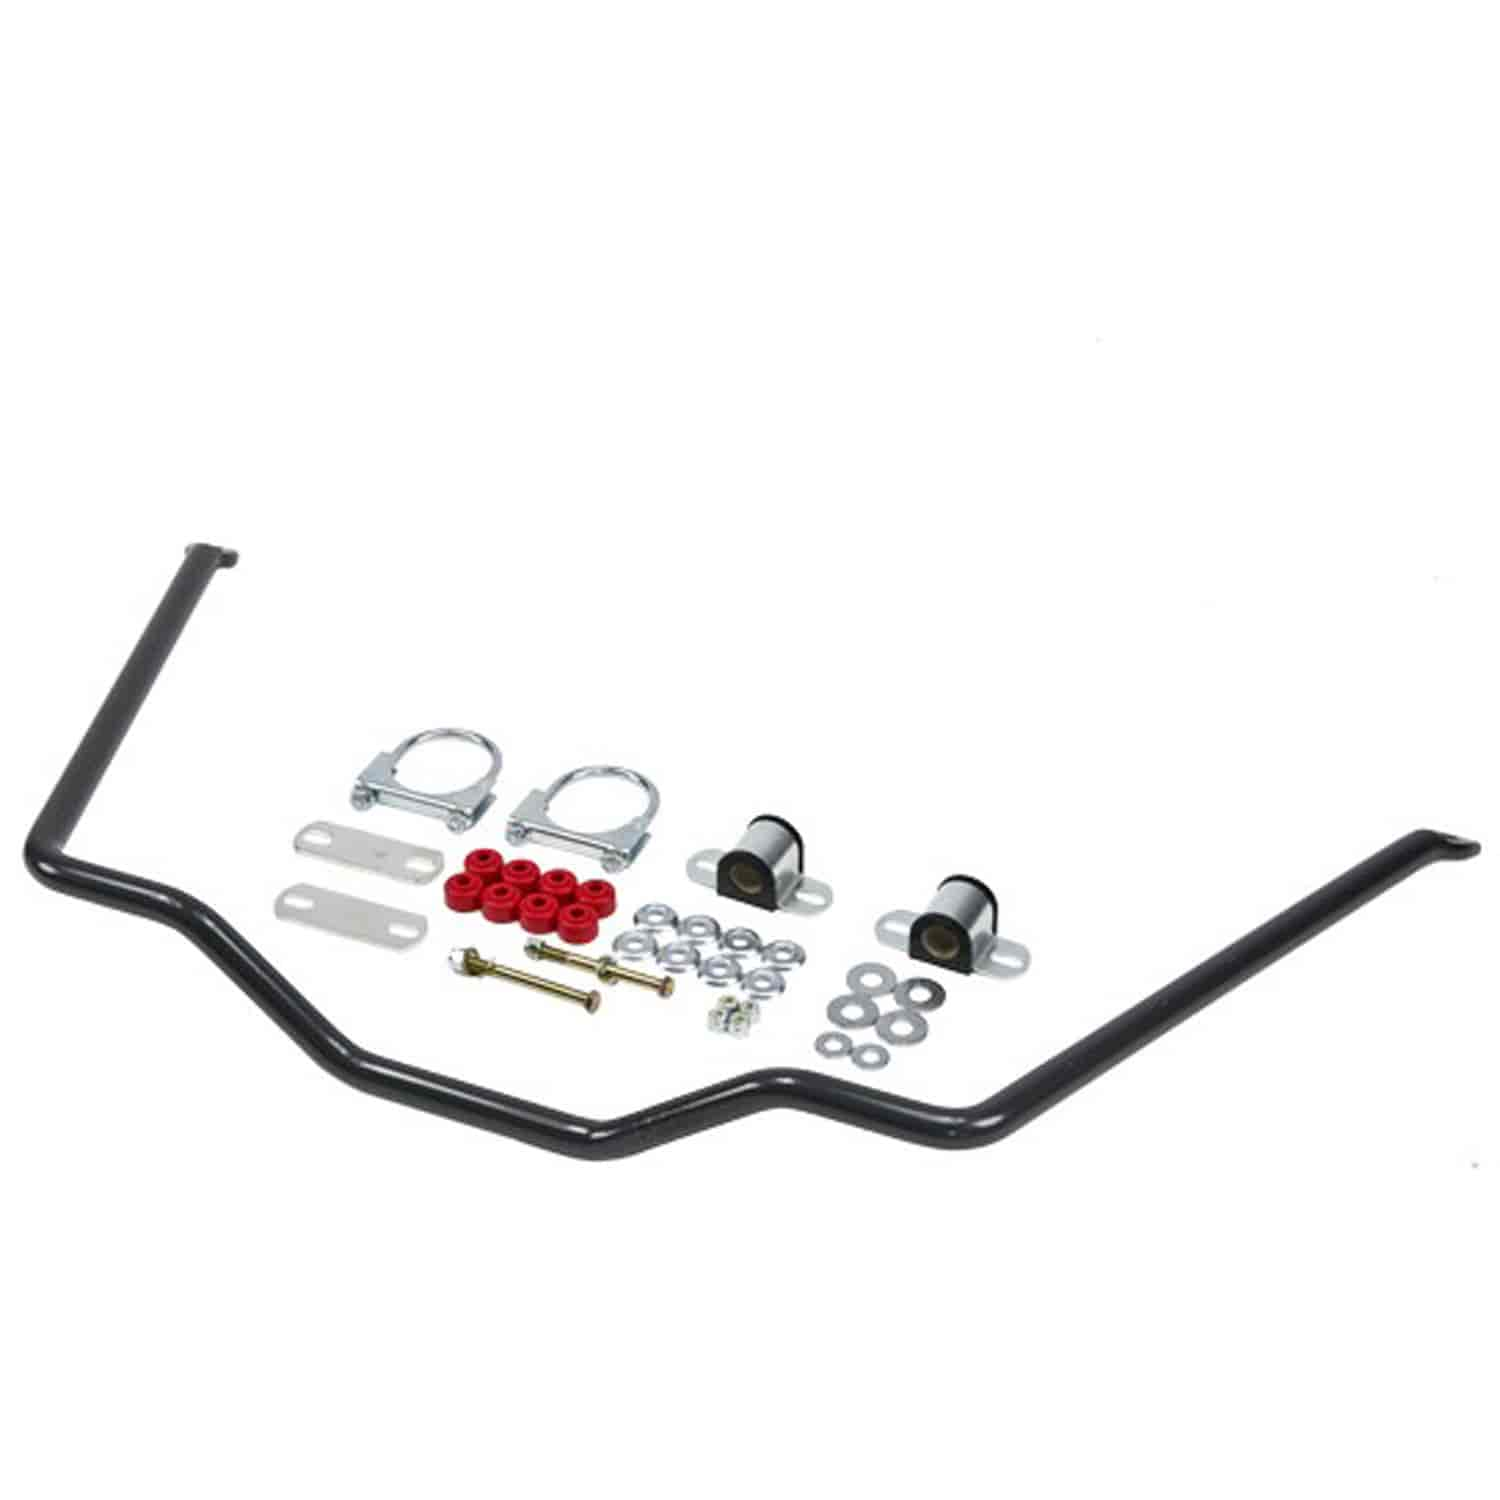 Belltech 5520 Rear Sway Bar Kit For 1982 2004 Chevy S10